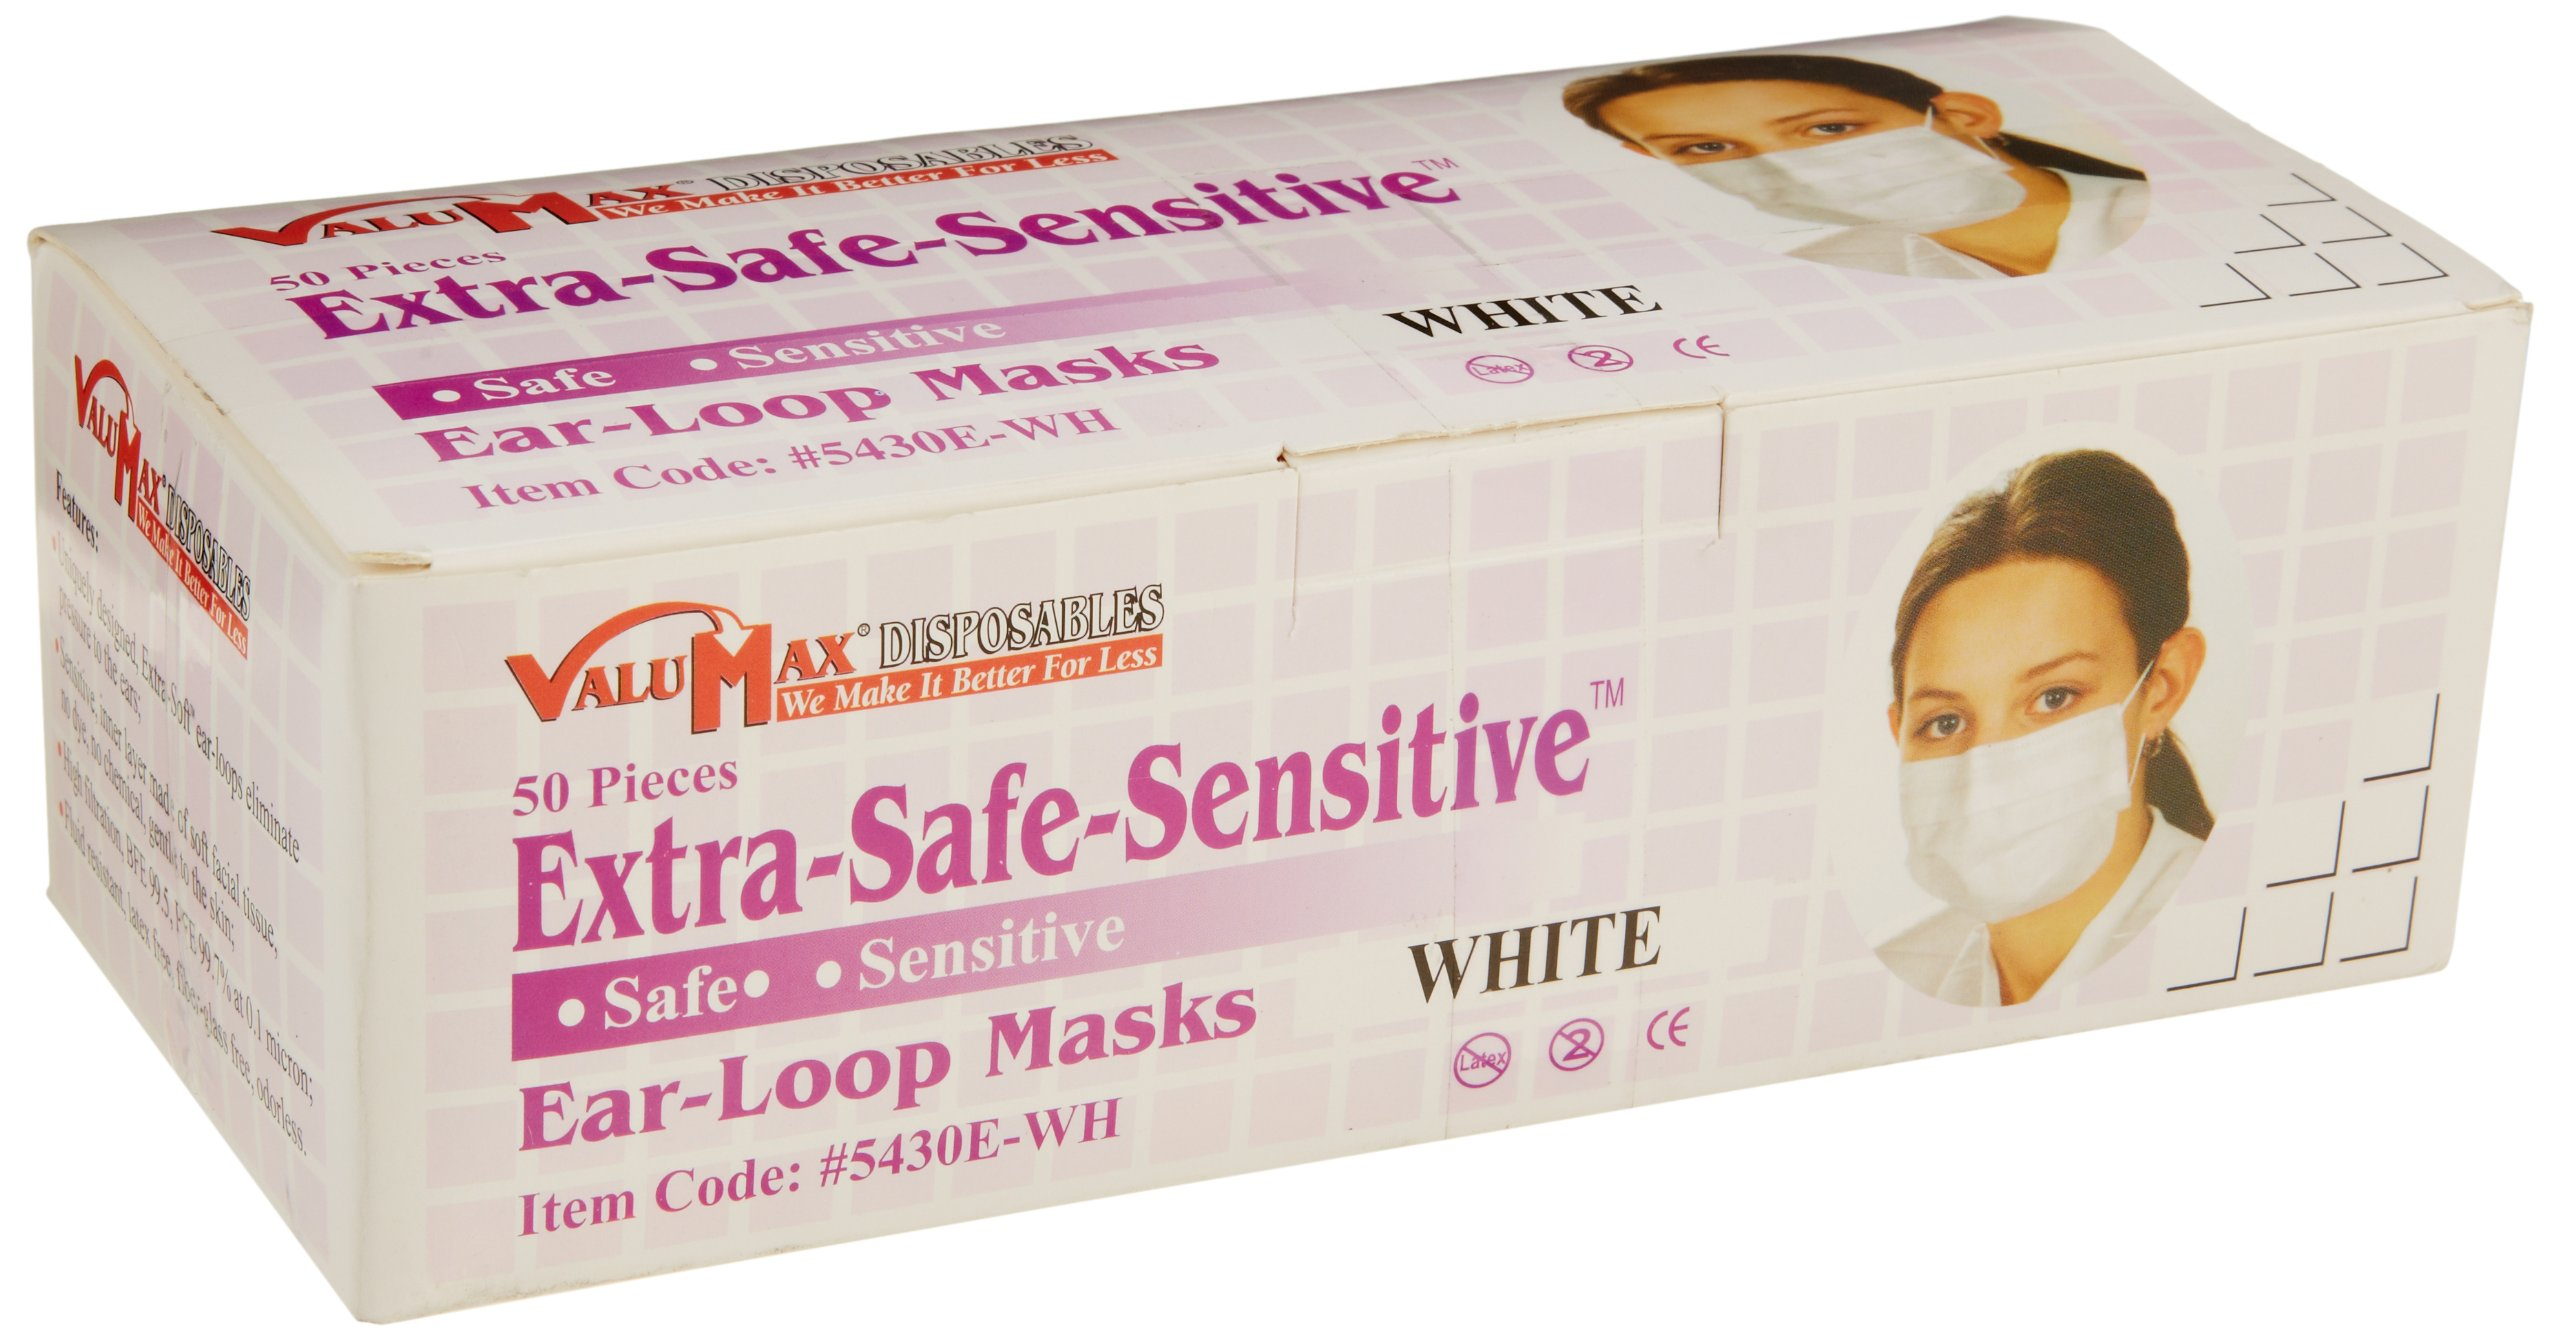 ValuMax 5430E-WH Extra-Safe-Sensitive Disposable Earloop Face Masks, Cellulose Inner Layer, High Filtration, White, Box of 50